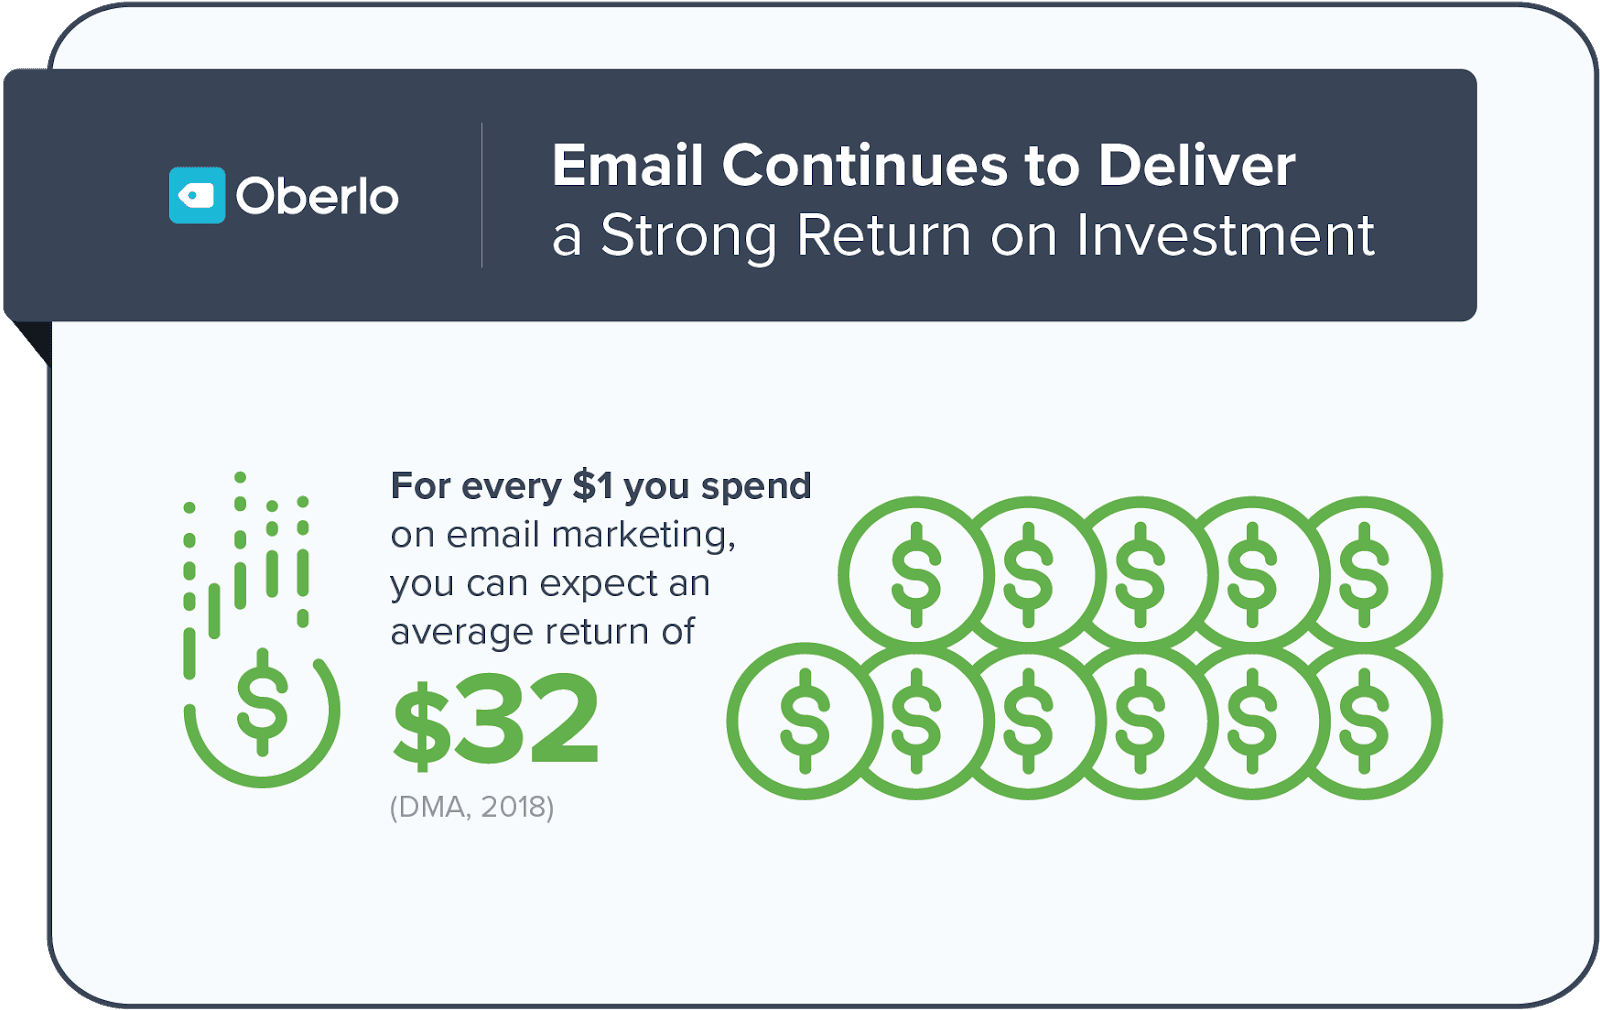 Email marketing roi